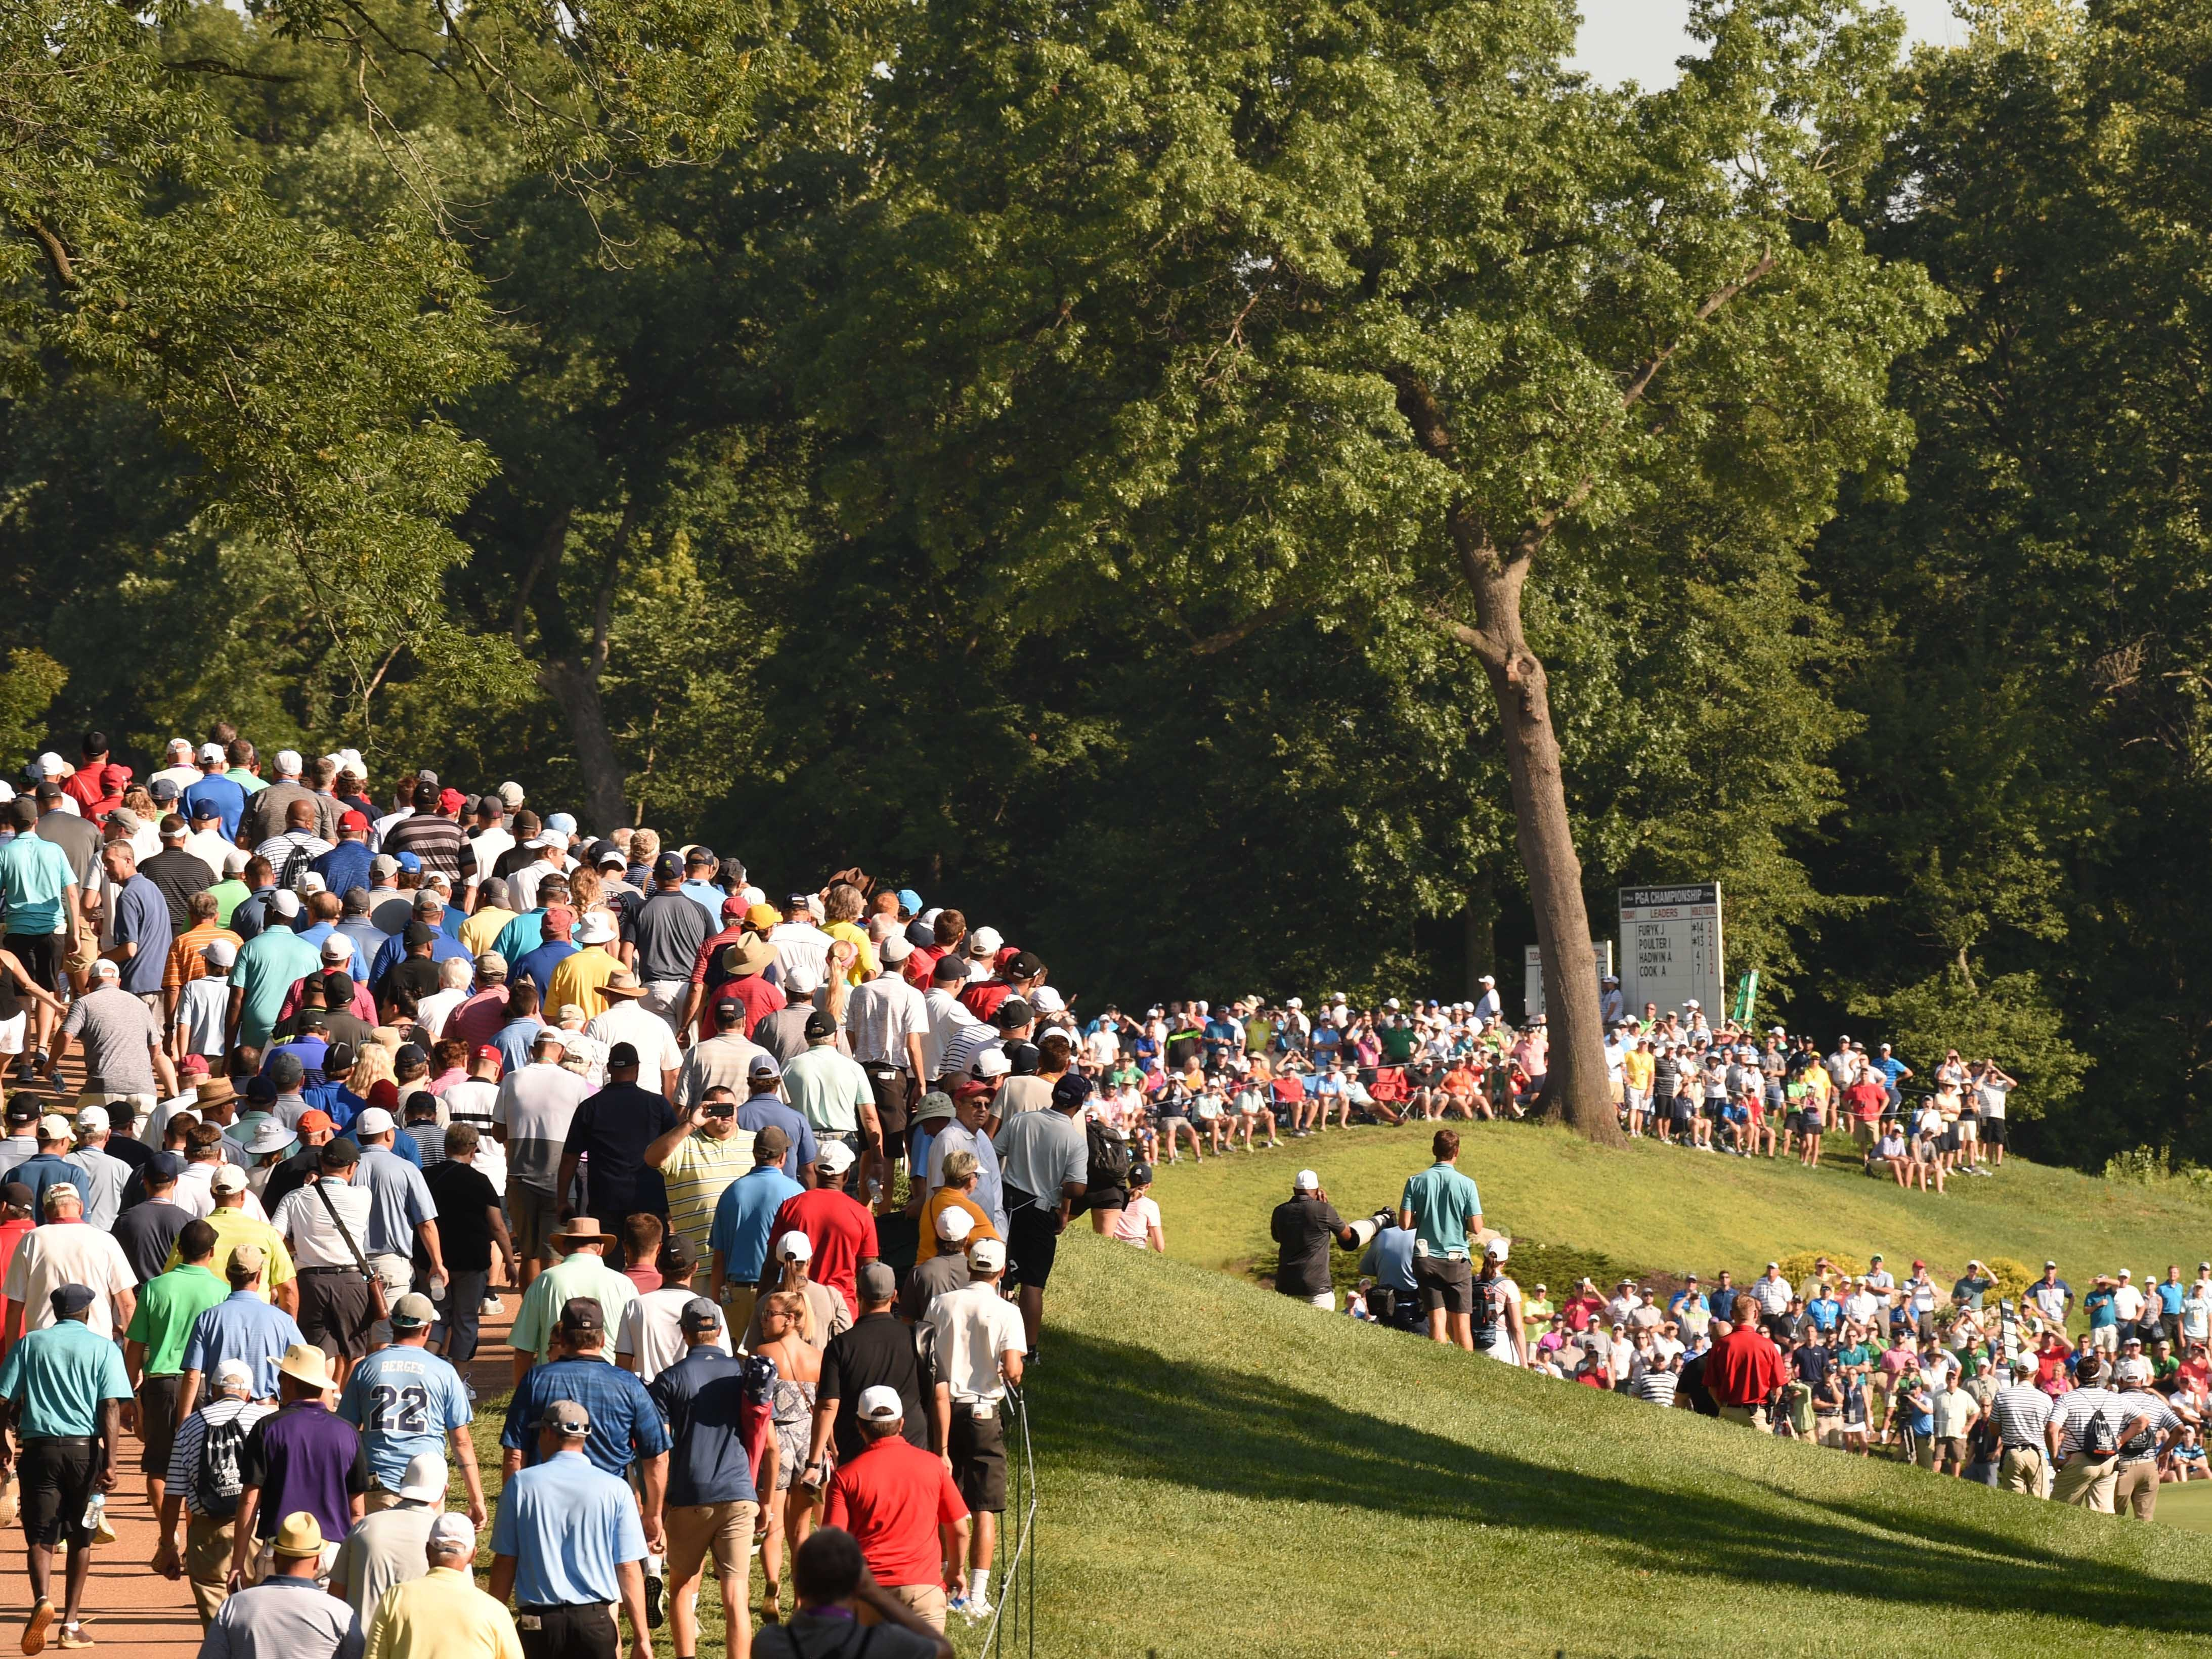 The crowd follows the group of Justin Thomas , Rory McIlroy and Tiger Woods on the 11th fairway during the first round.